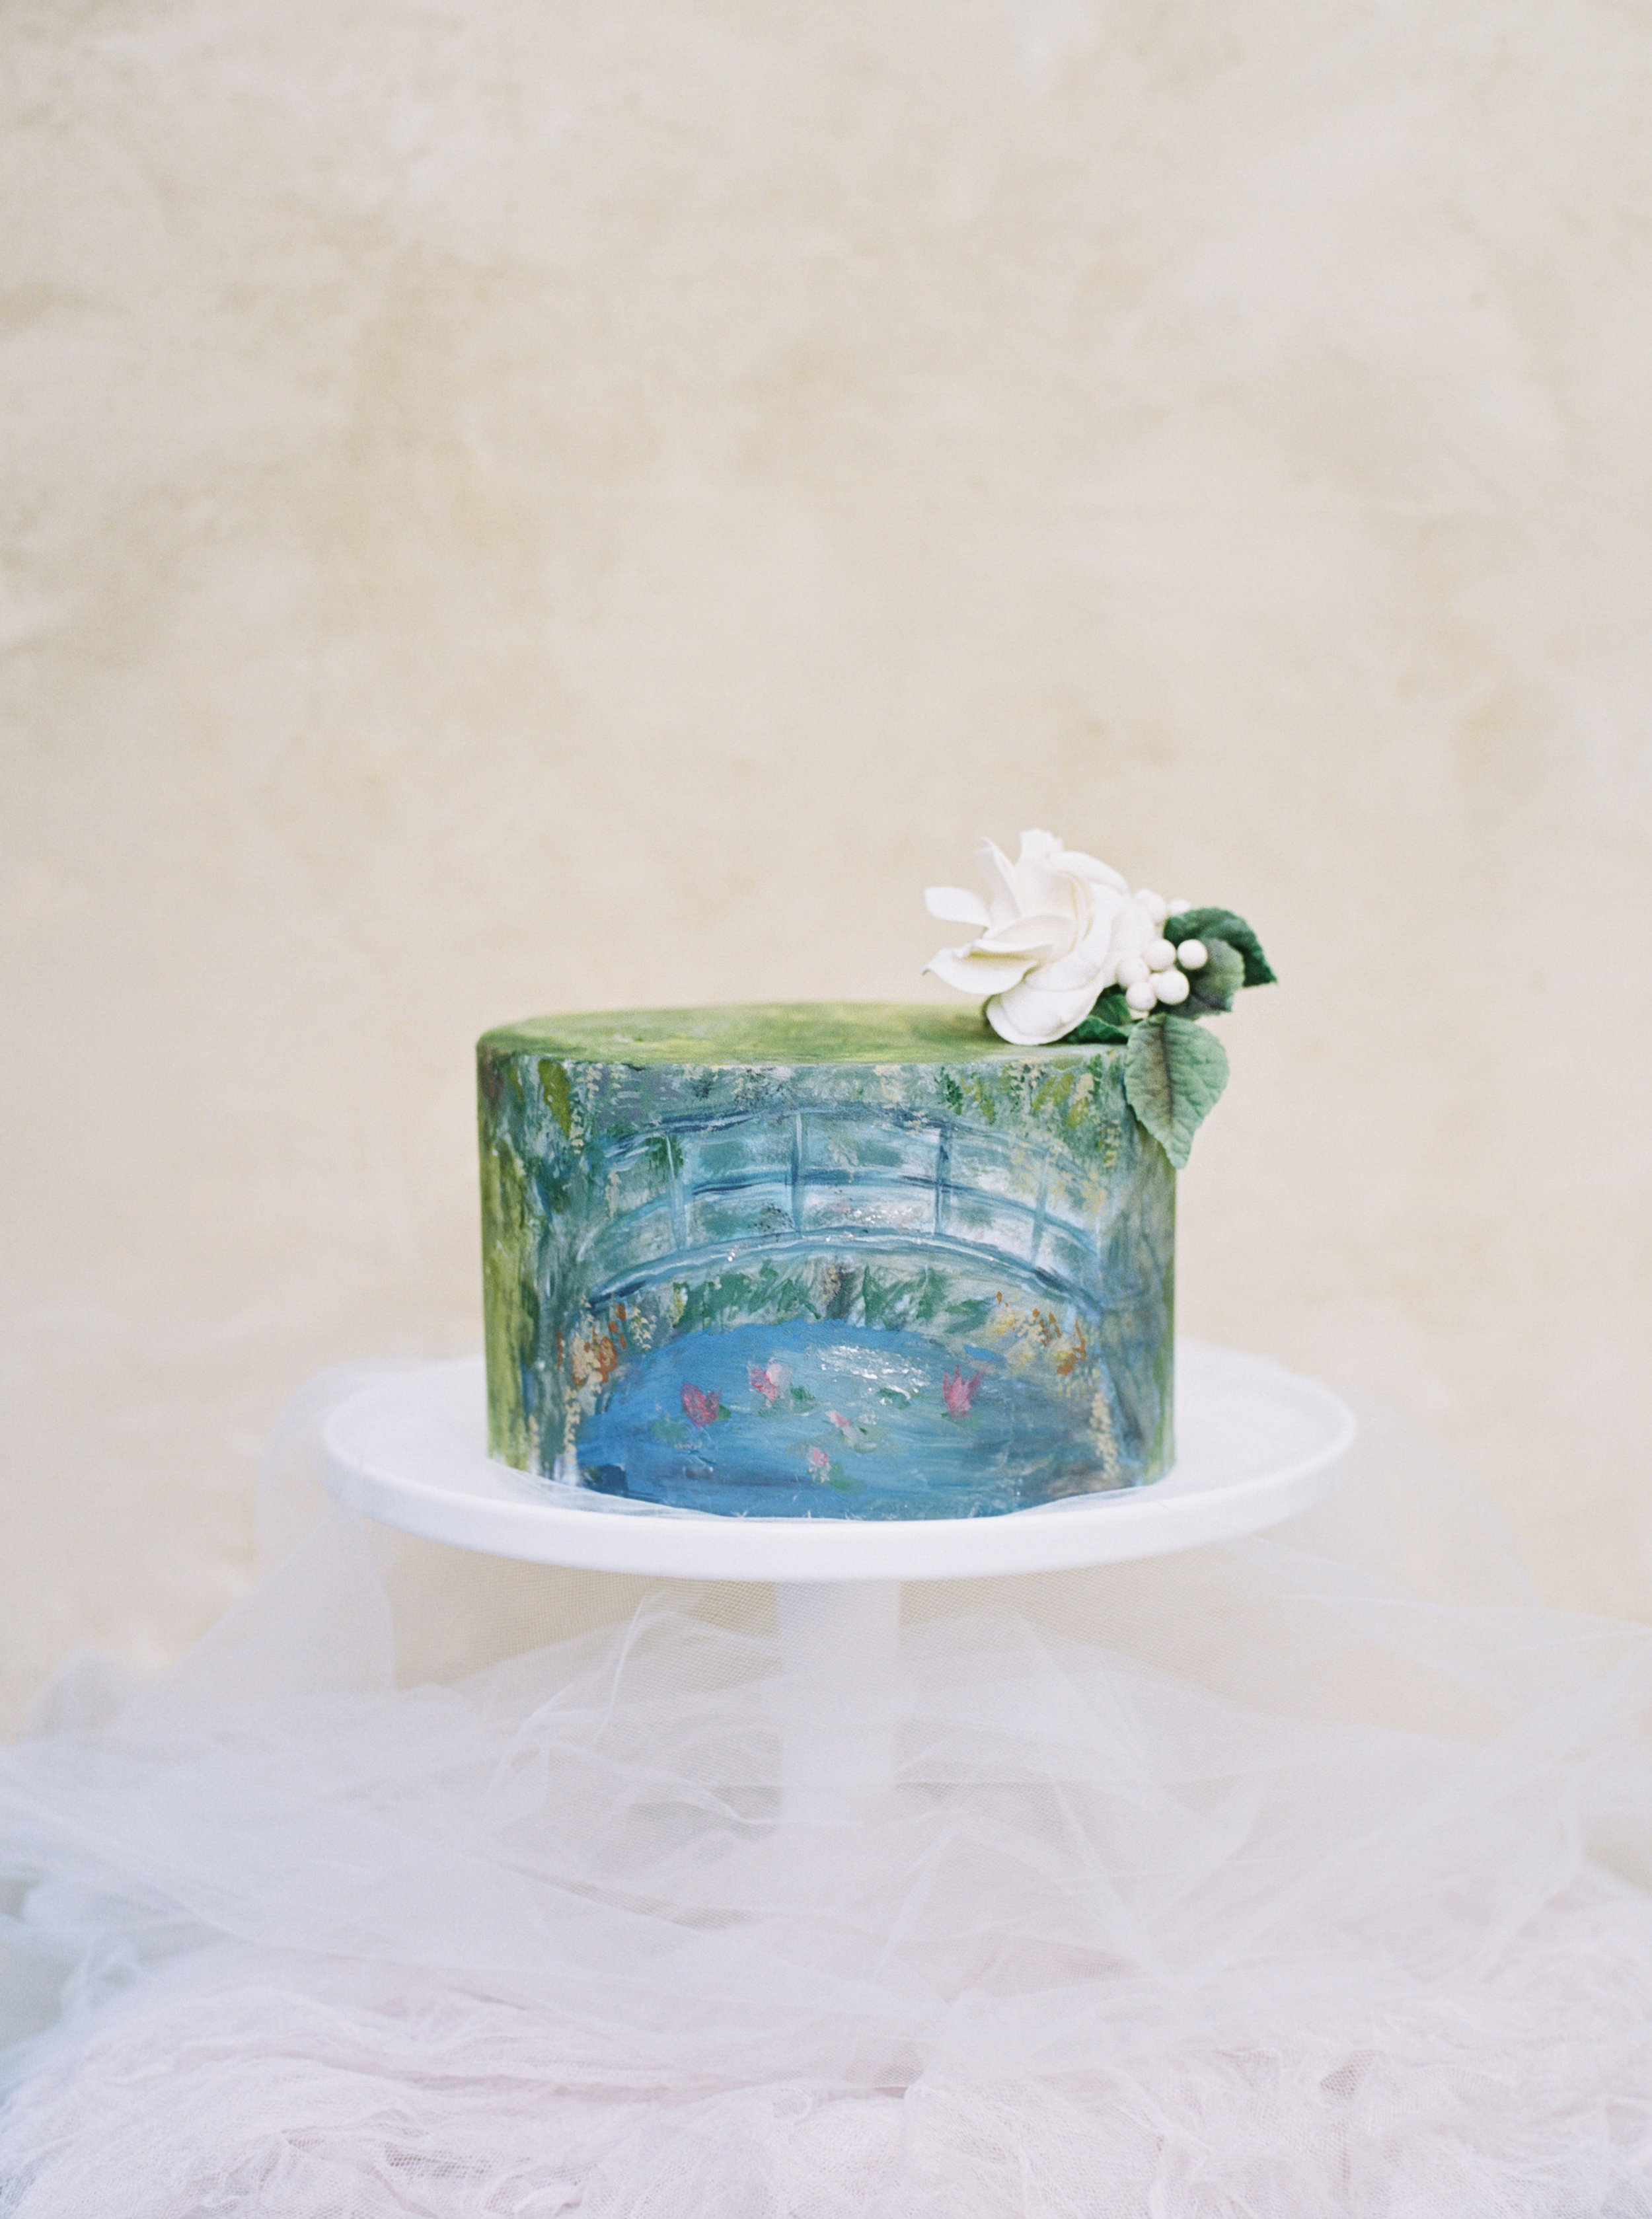 trouvaille-bakery-baltimore-wedding-cake-artist